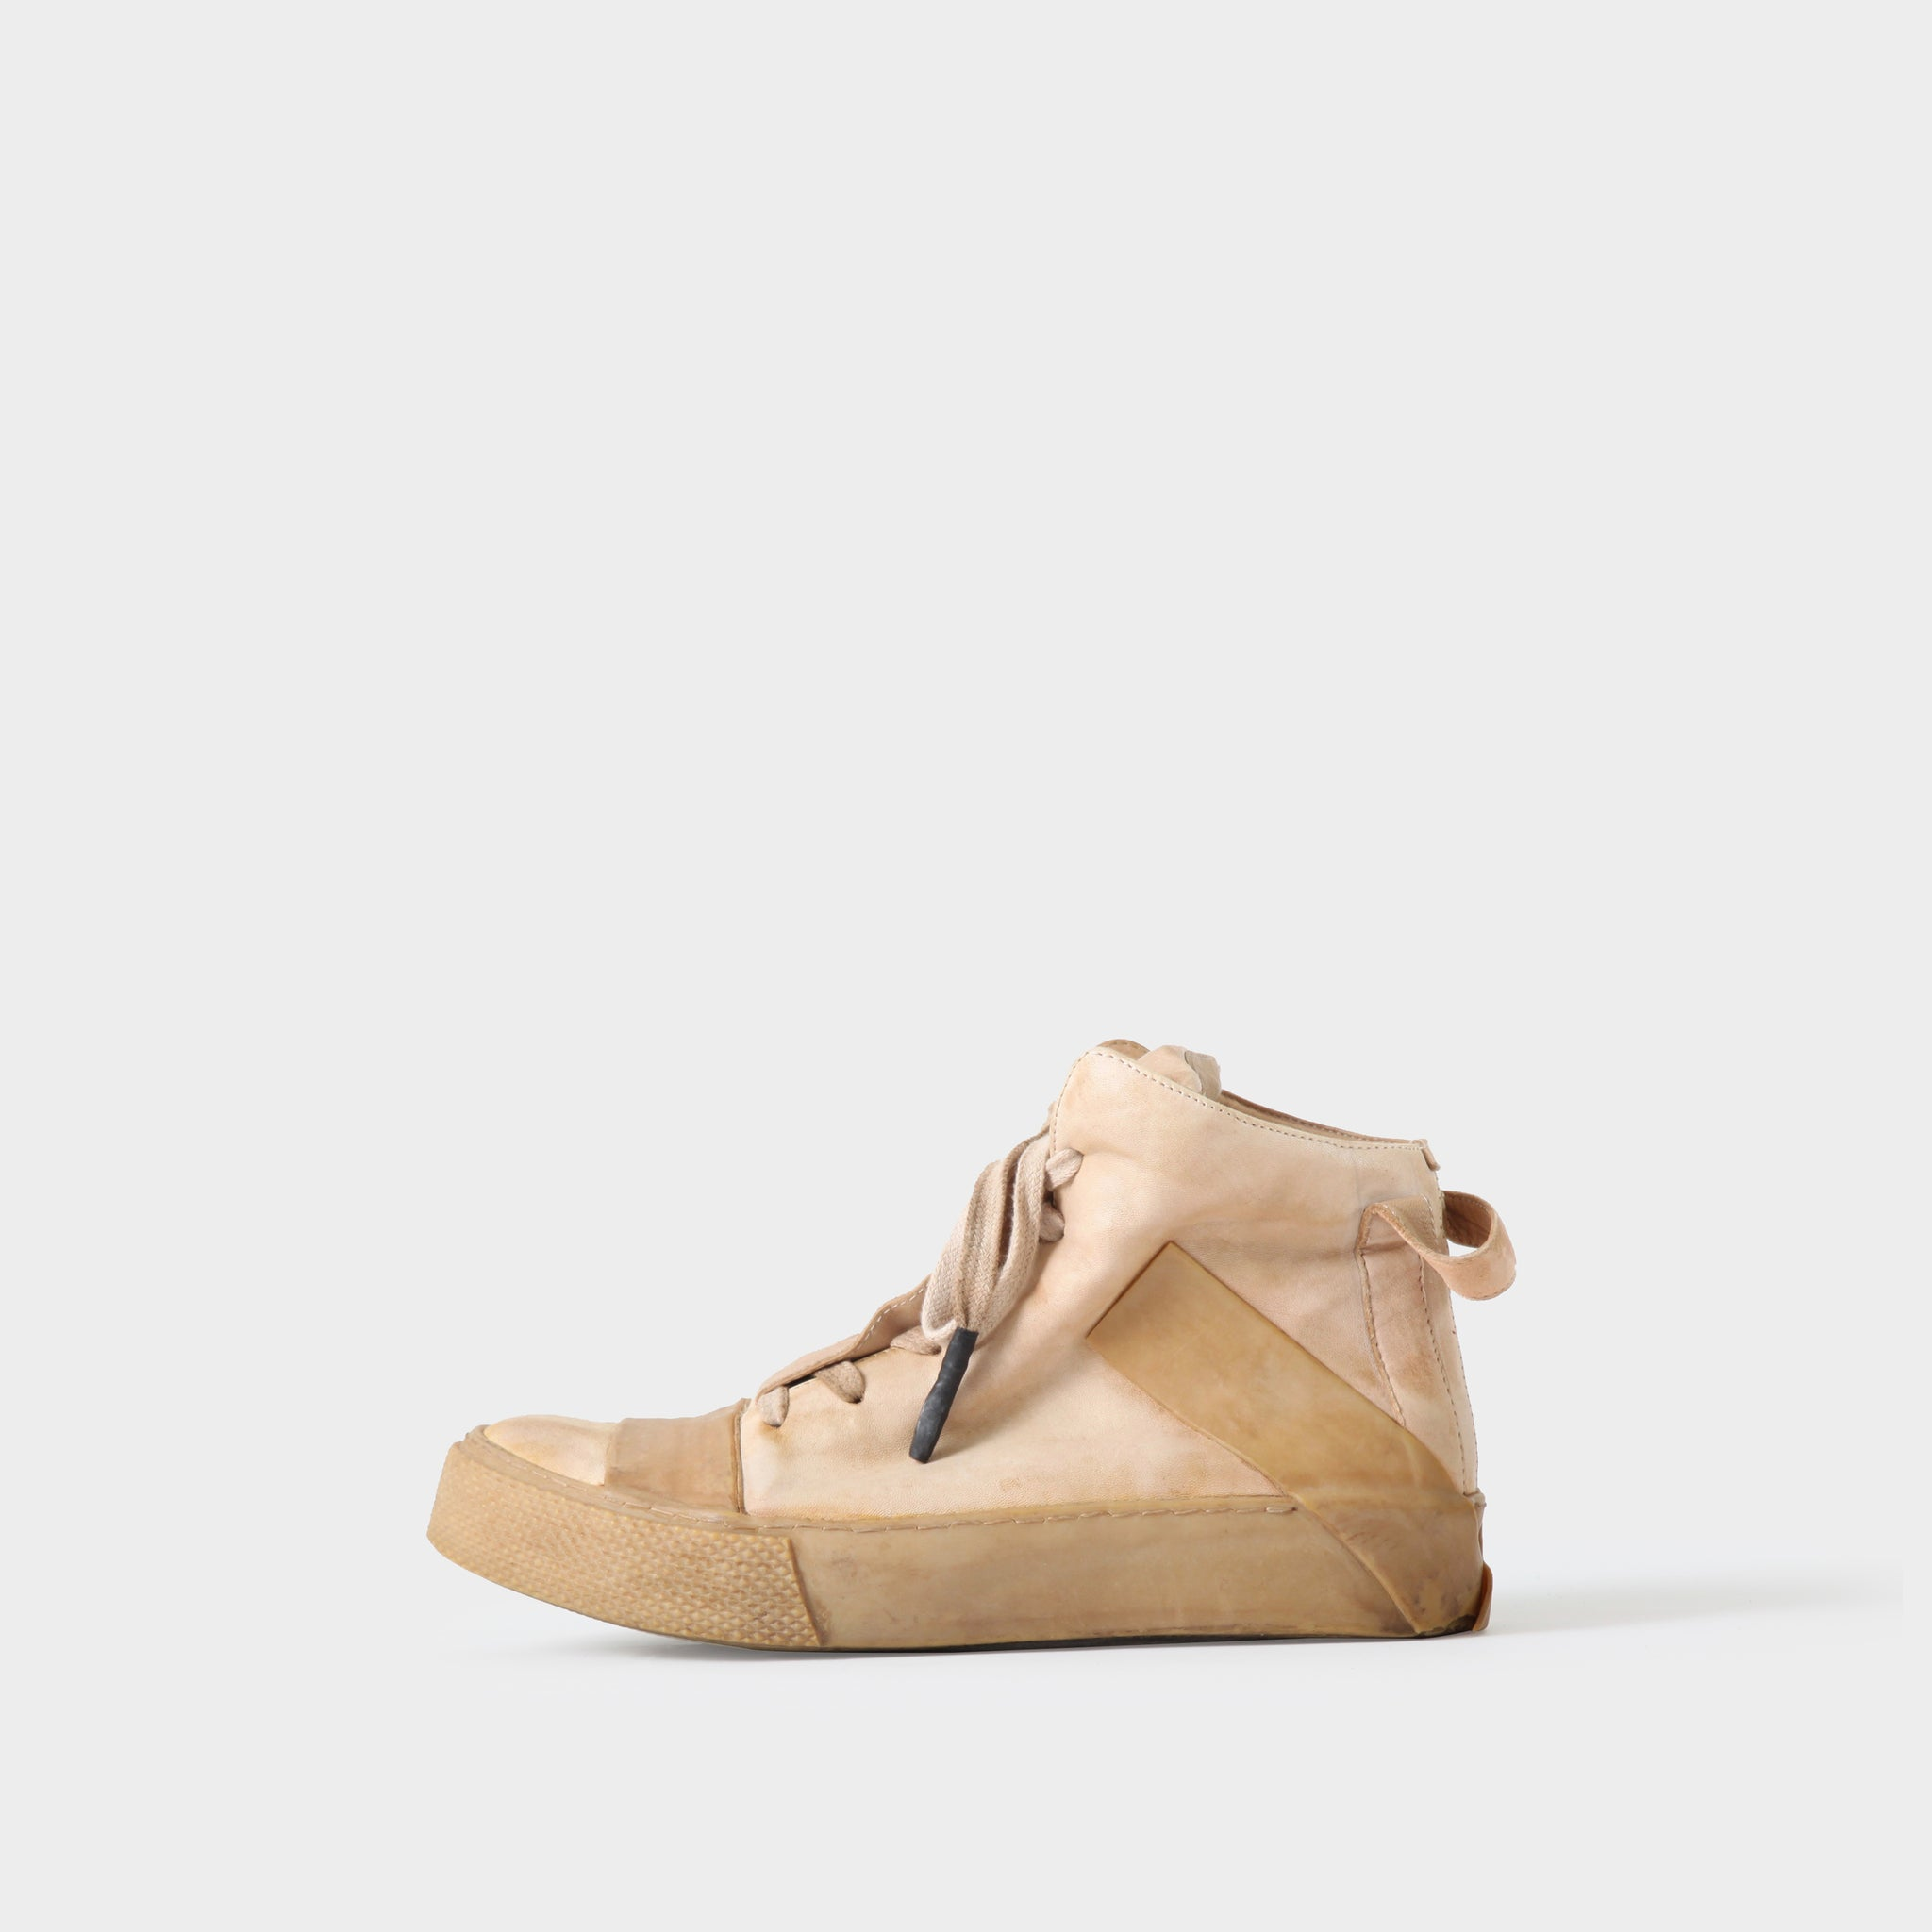 Boris Bidjan Saberi Vegetable Tan Leather Sneaker